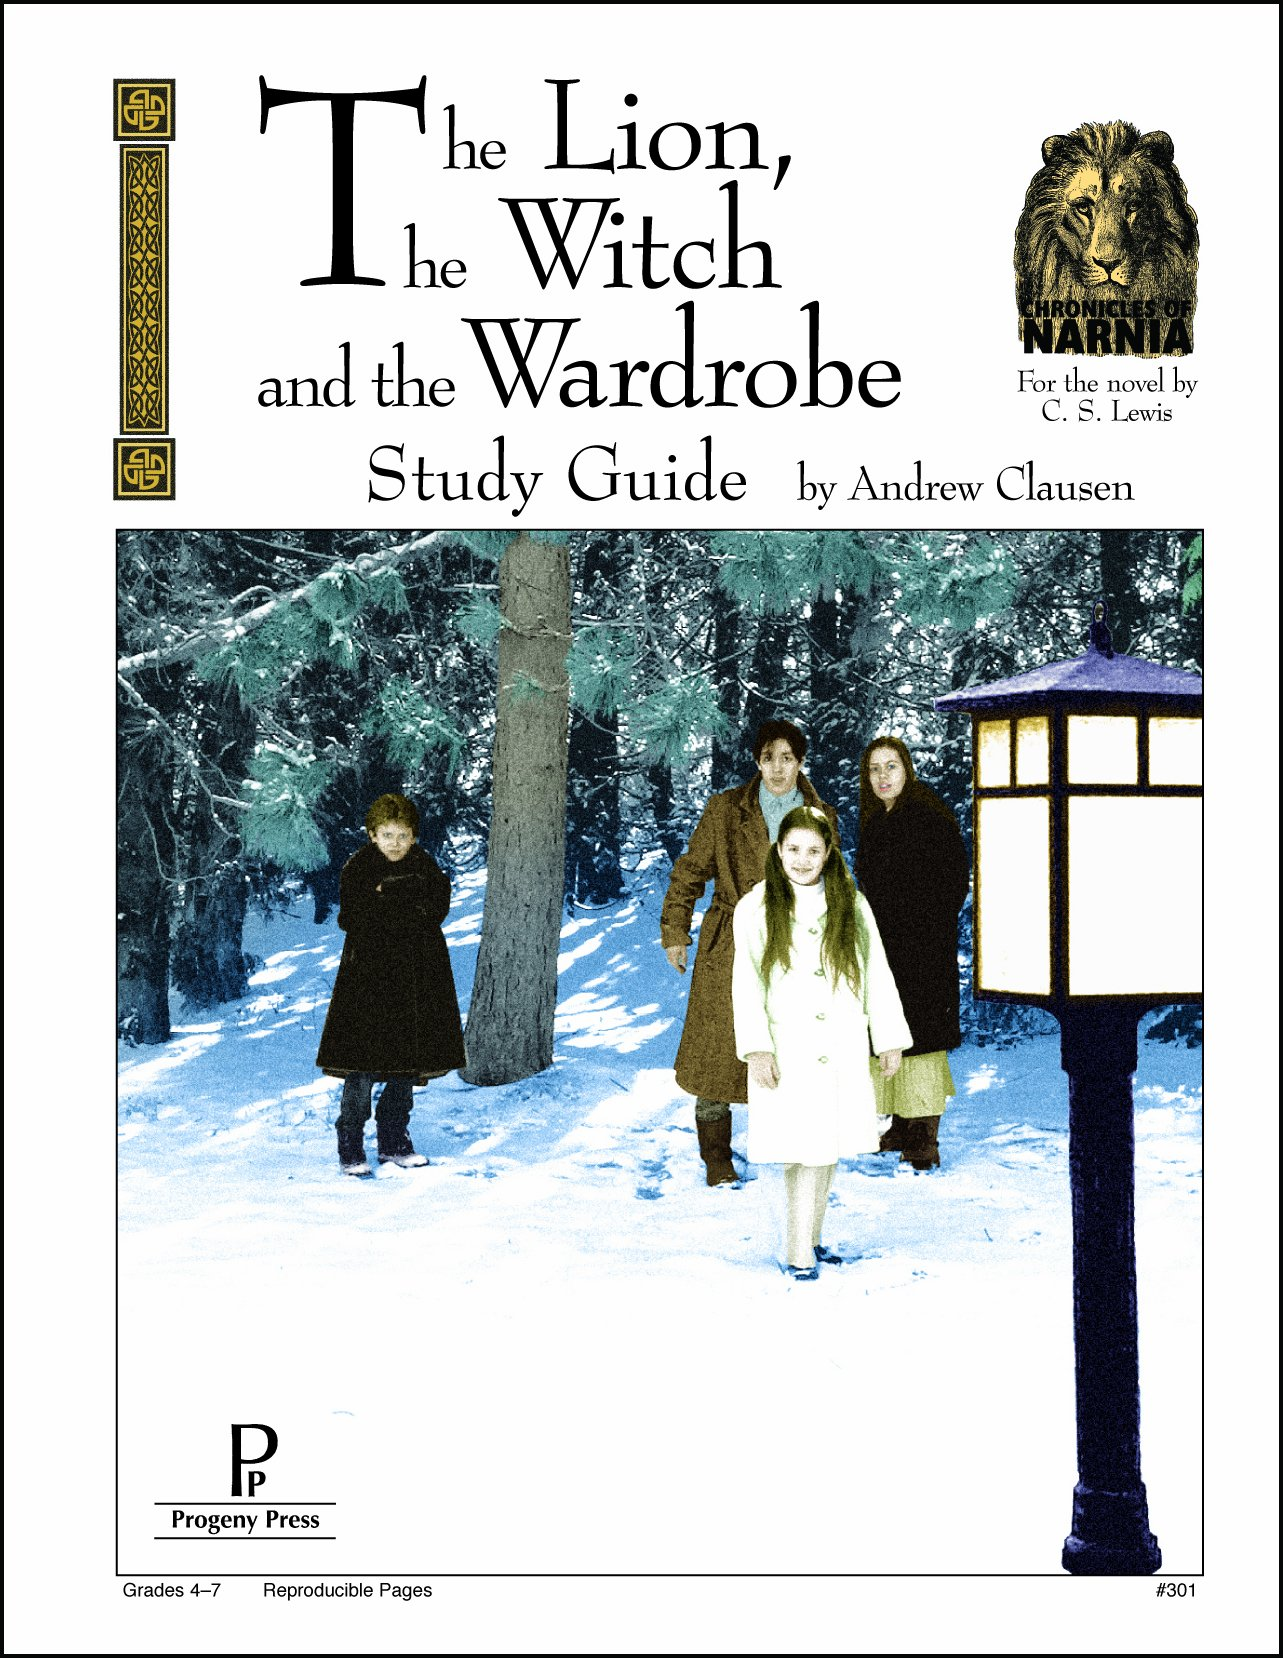 The Lion, the Witch and the Wardrobe Study Guide: Andrew Clausen:  9781586093419: Amazon.com: Books